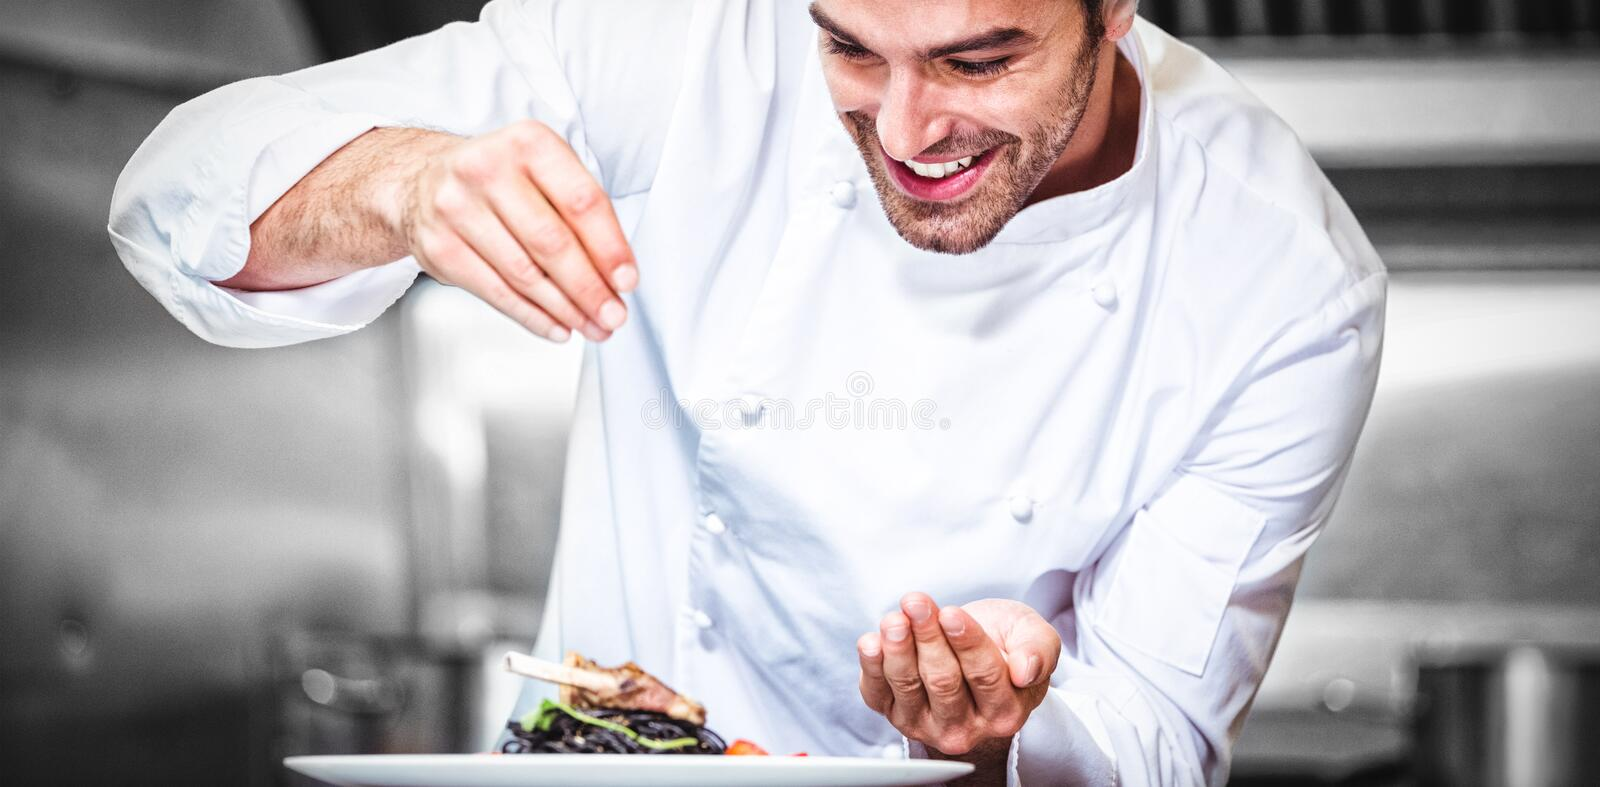 Chef sprinkling spices on dish royalty free stock photography